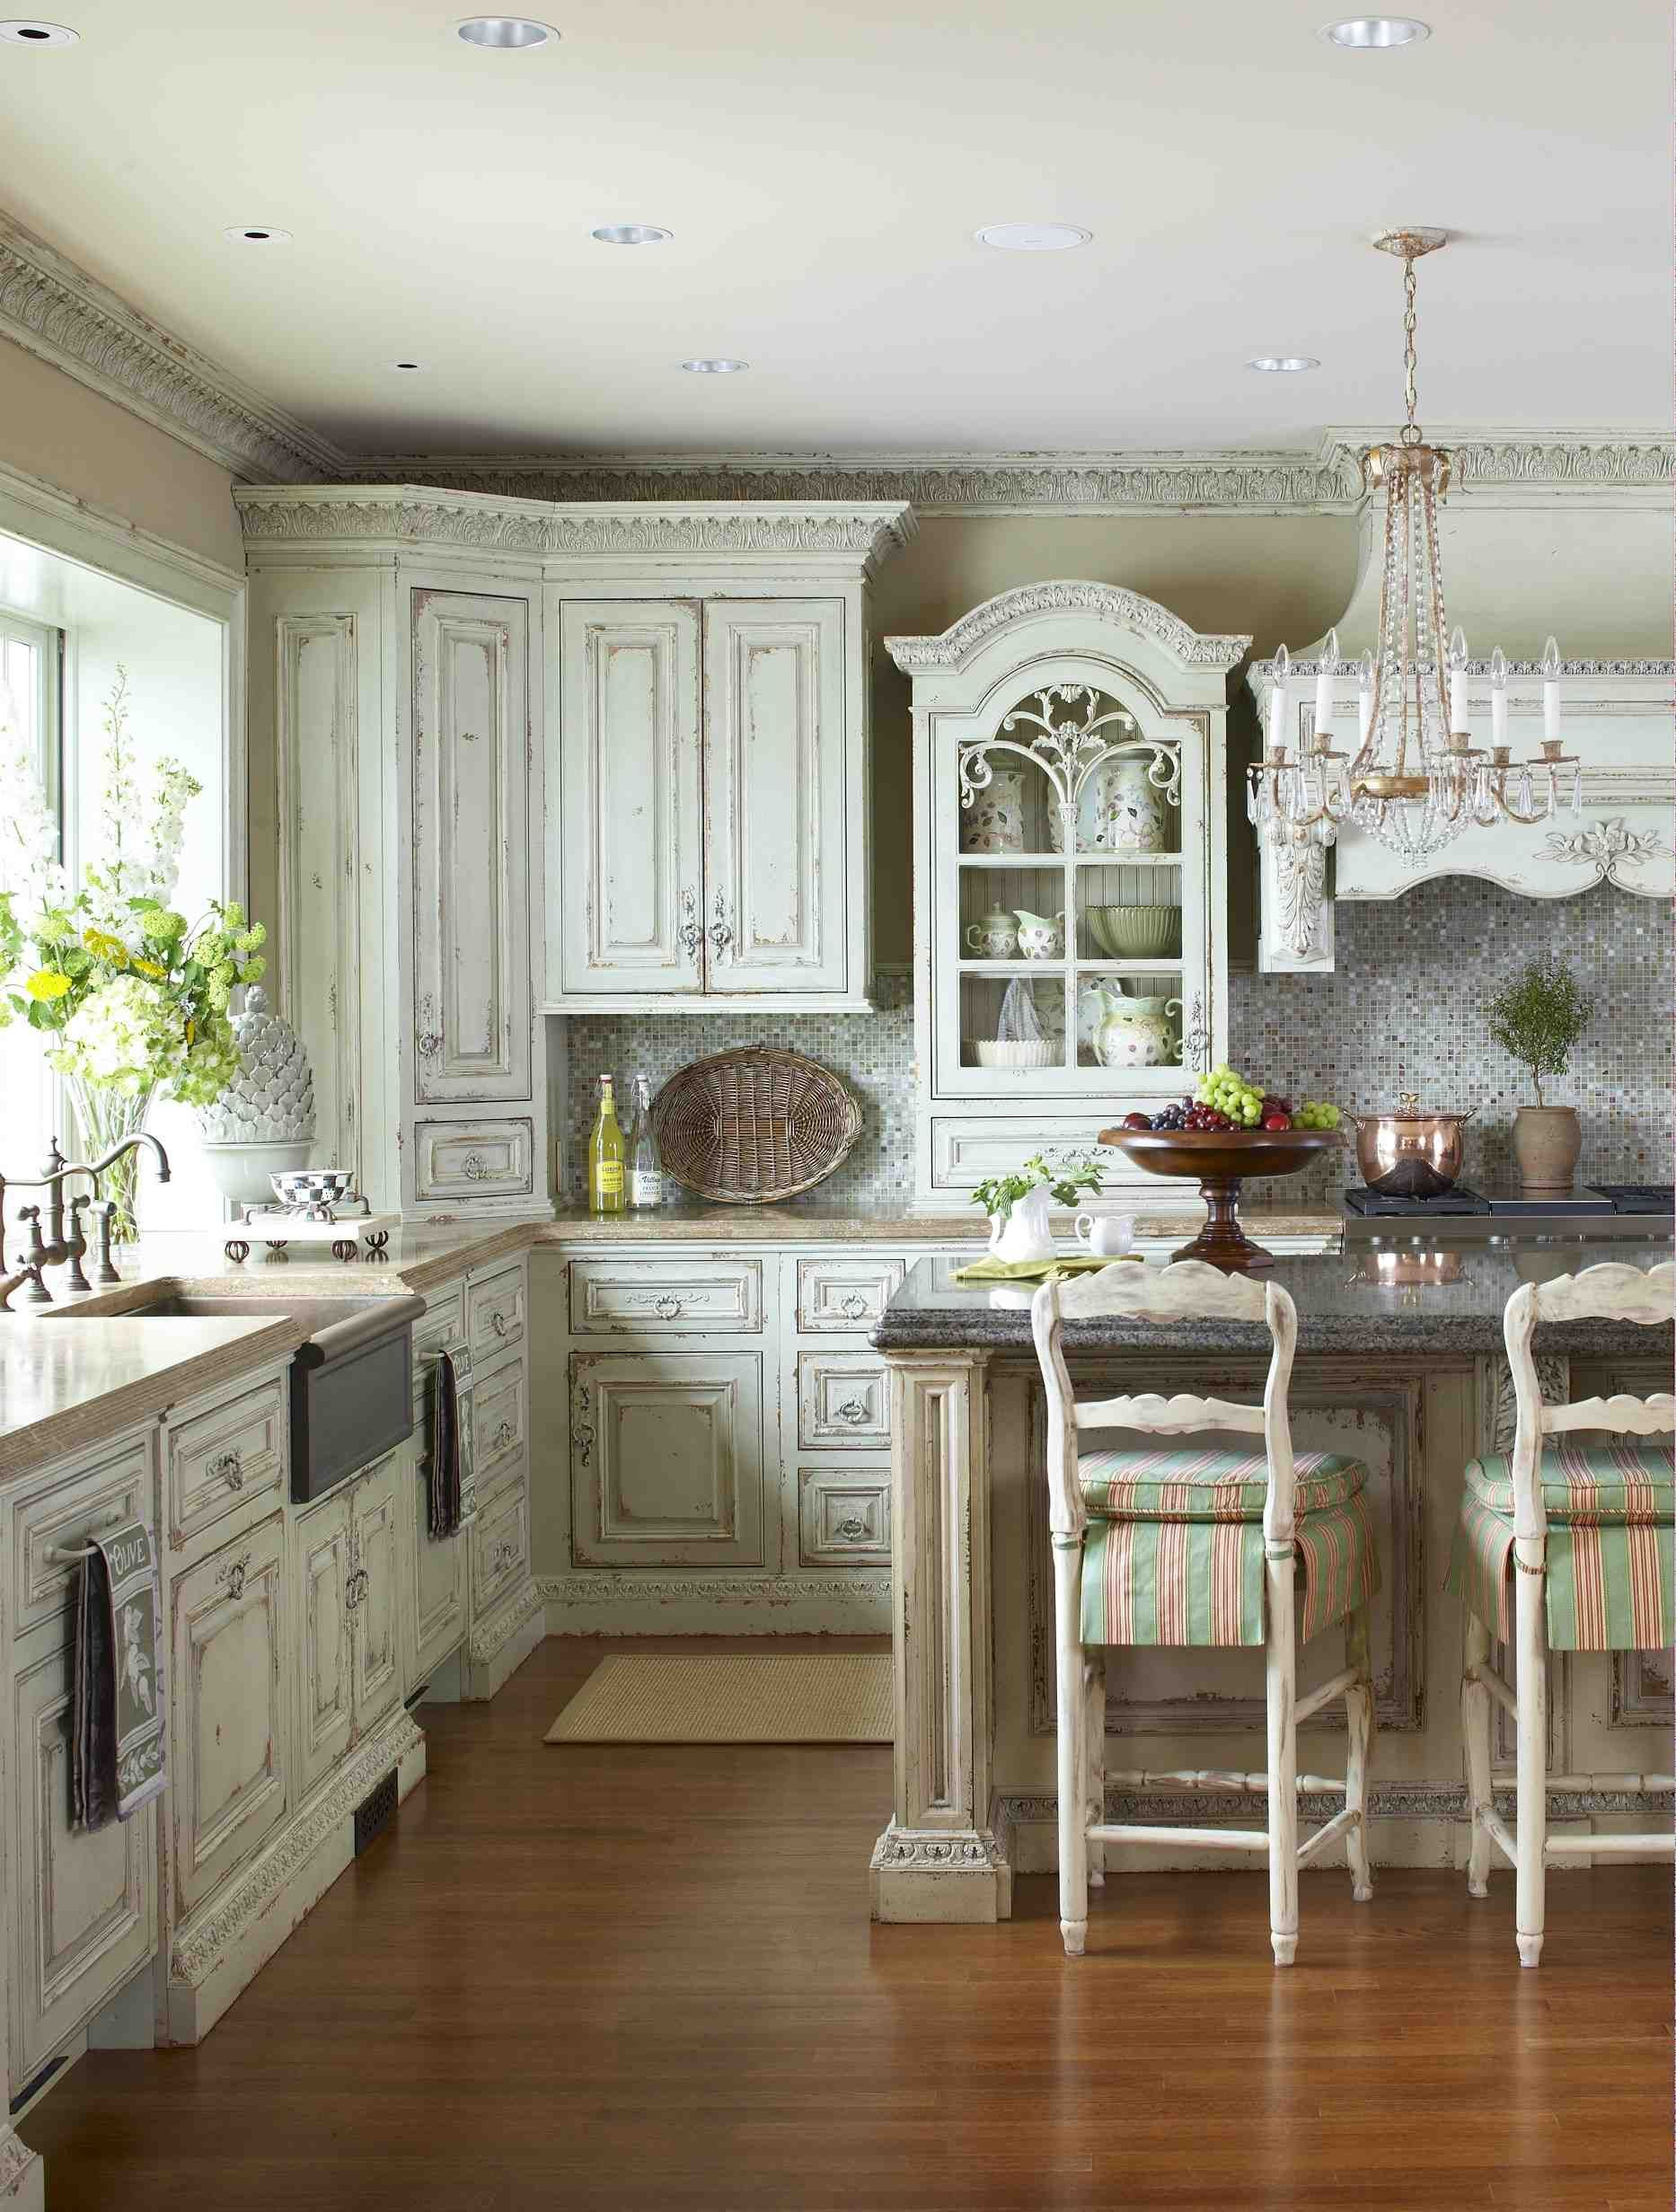 Kitchens - the HEART of the HOME